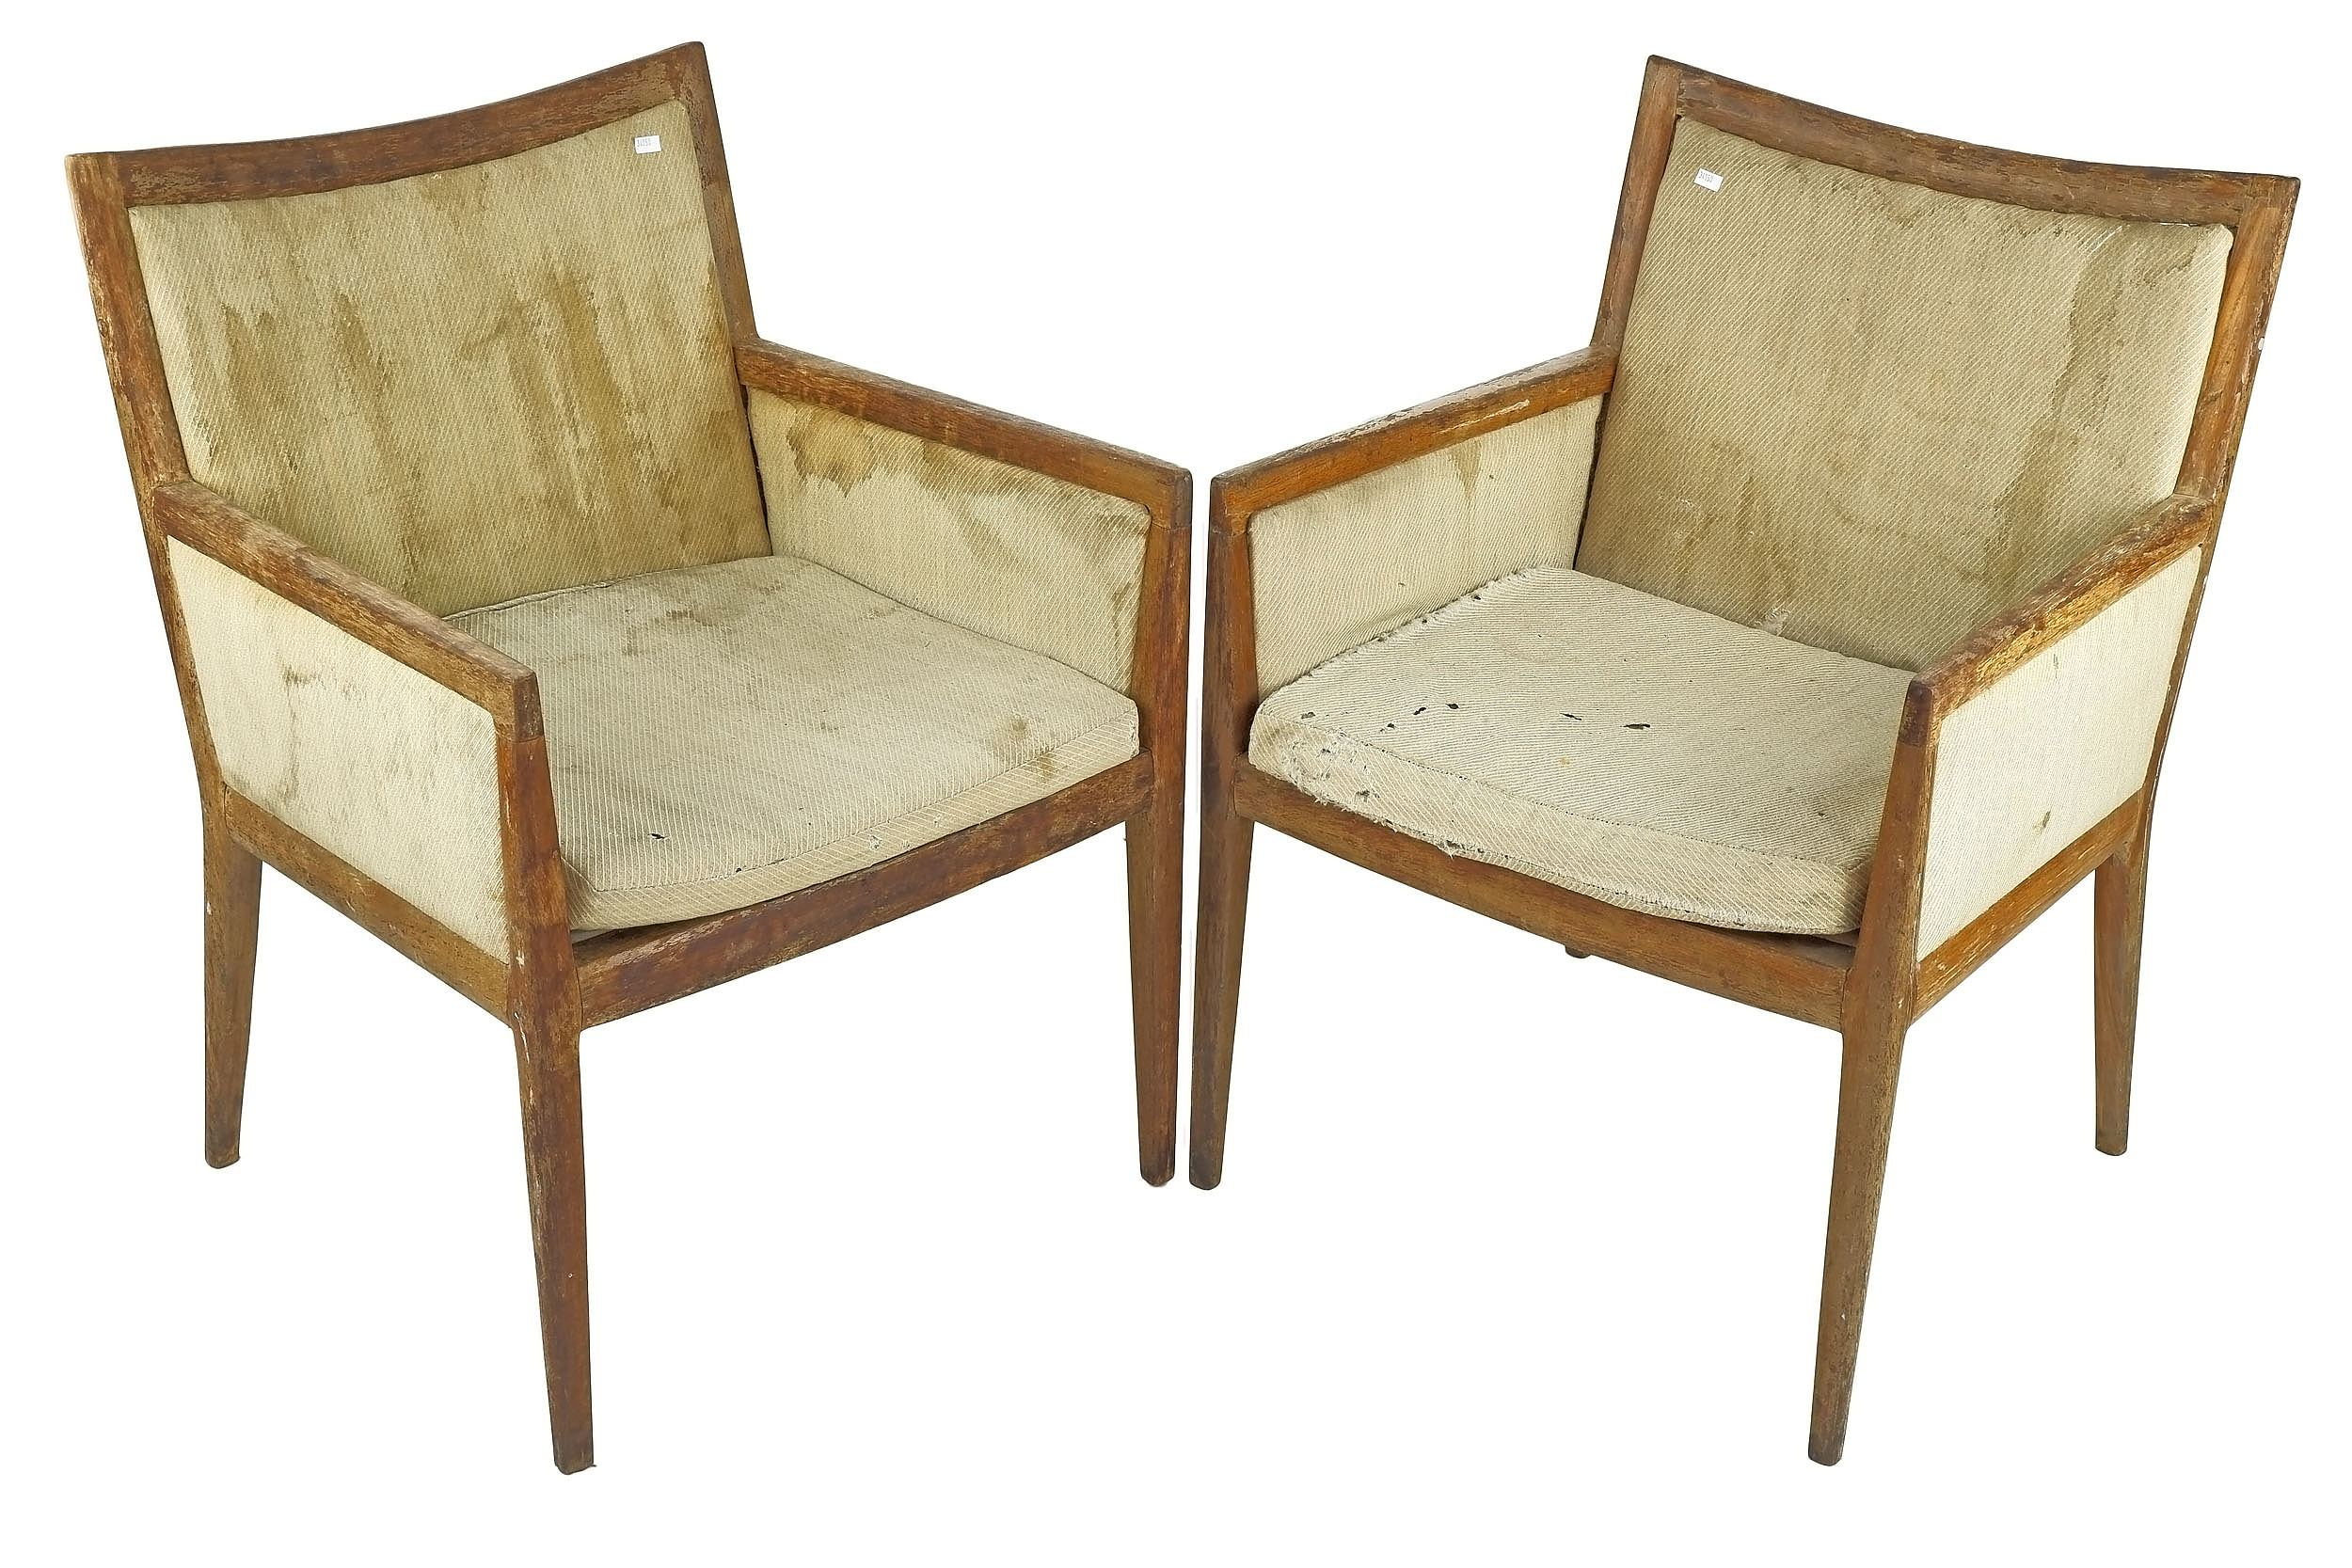 'Pair of Fred Ward Blackbean Armchairs, Designed for the Reserve Bank'